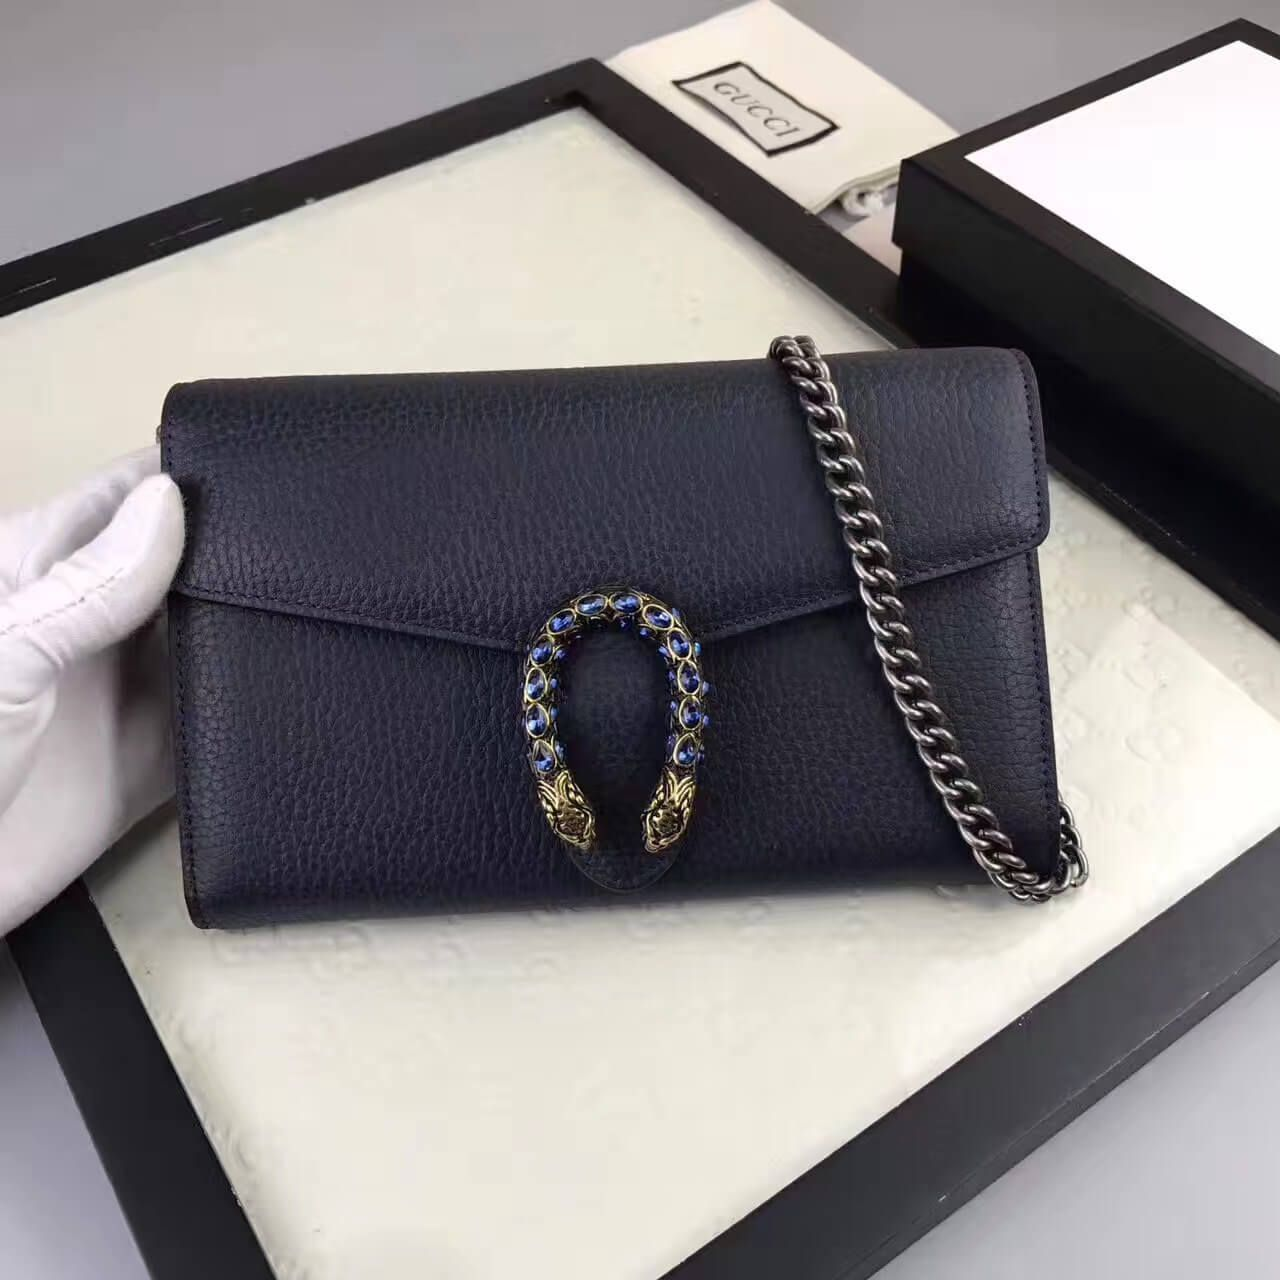 835137ad652866 Gucci Dionysus Mini Chain Bag 100% Authentic 80% Off | Authentic Gucci  Handbags